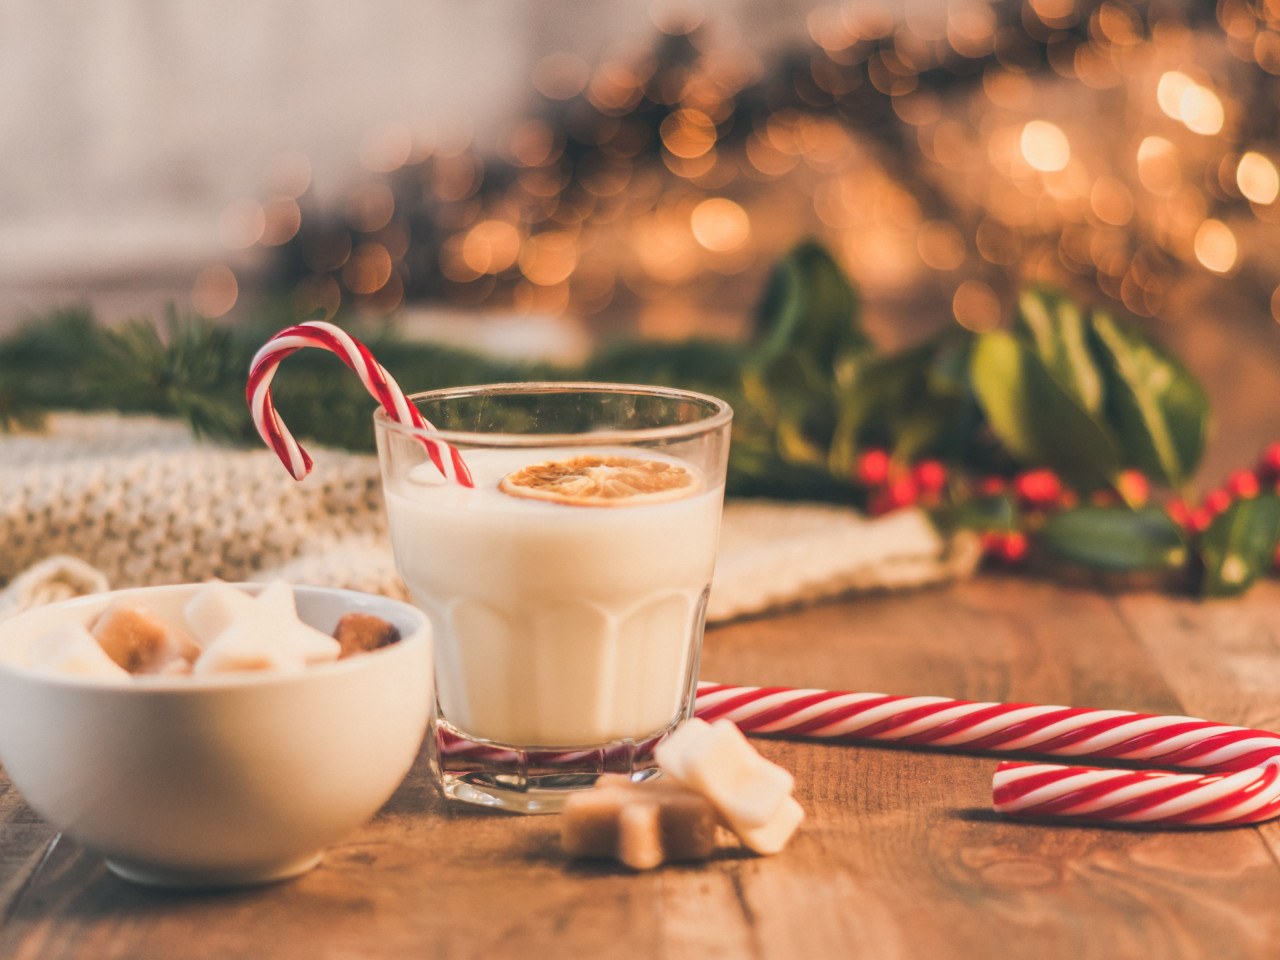 Seasonal Christmas sweets and cup of milk wallpaper 1280x960